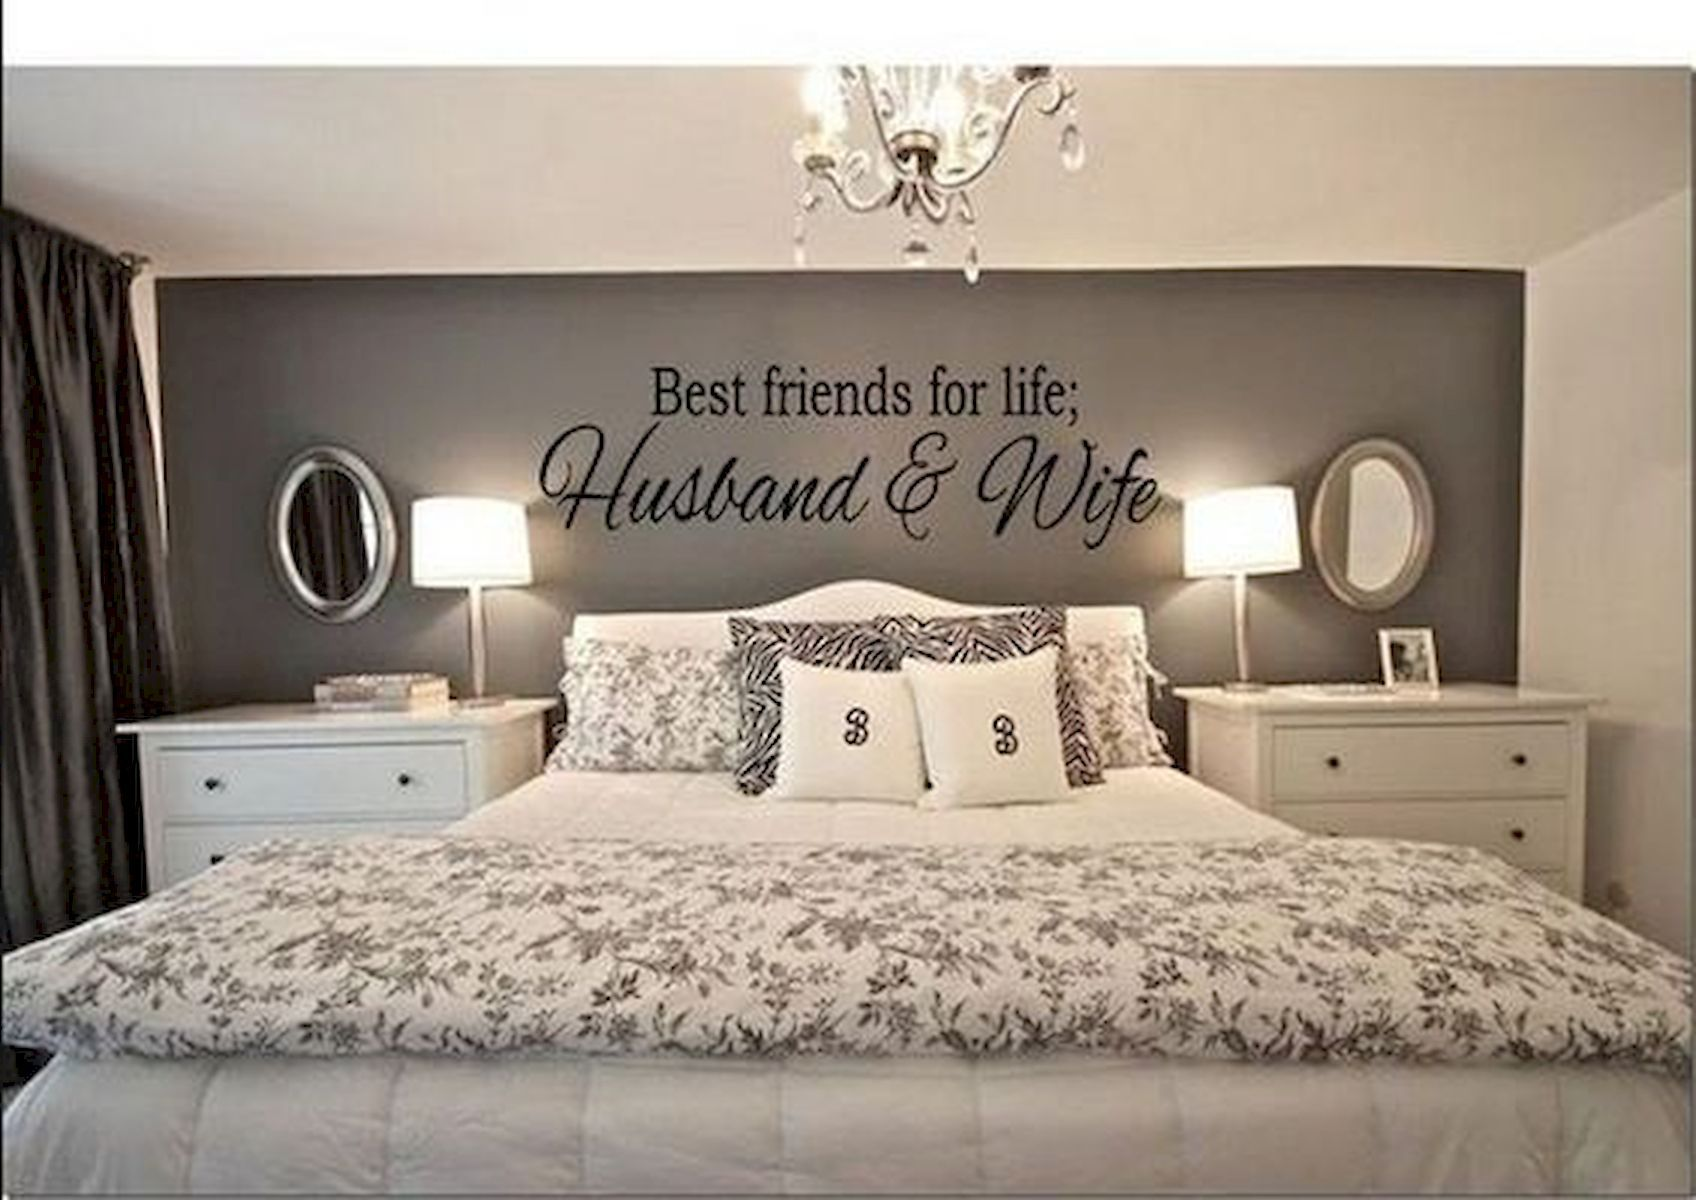 Gorgeous 55 Romantic Bedroom Decor For Couple Source Https House8055 Com 55 Romantic Bedroom Decor For Couple Master Bedrooms Decor Home Bedroom Makeover